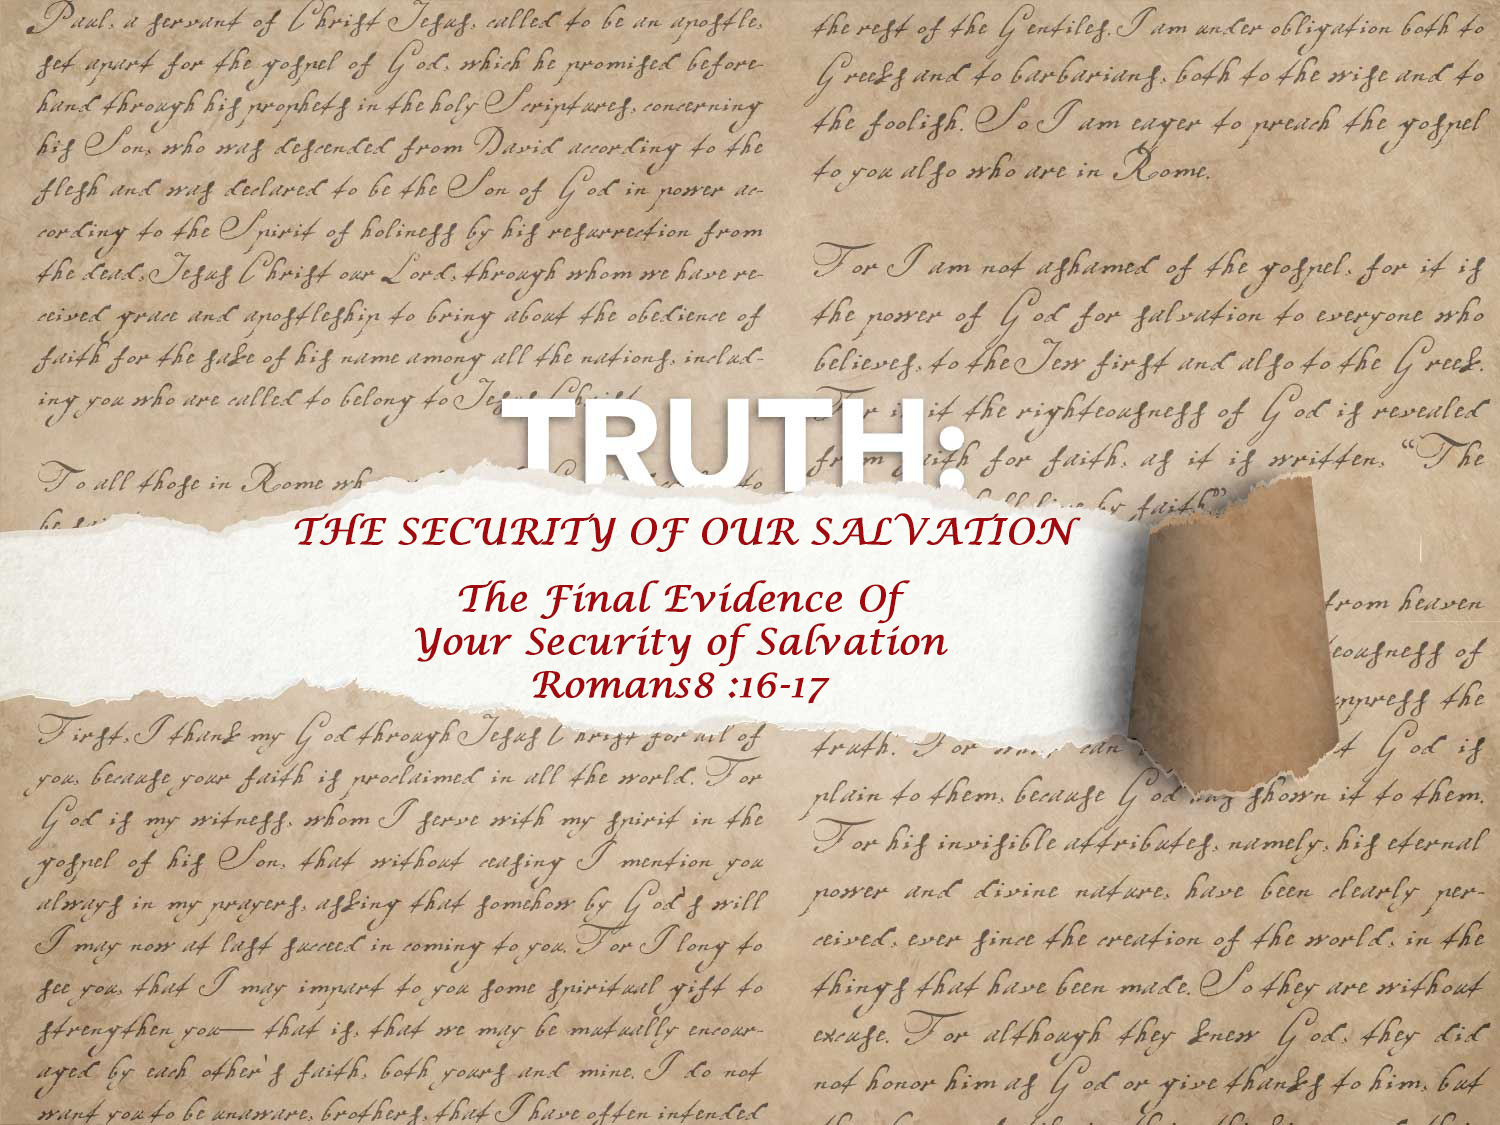 Romans 8:16-17 The Final Evidence Of Your Security Of Salvation